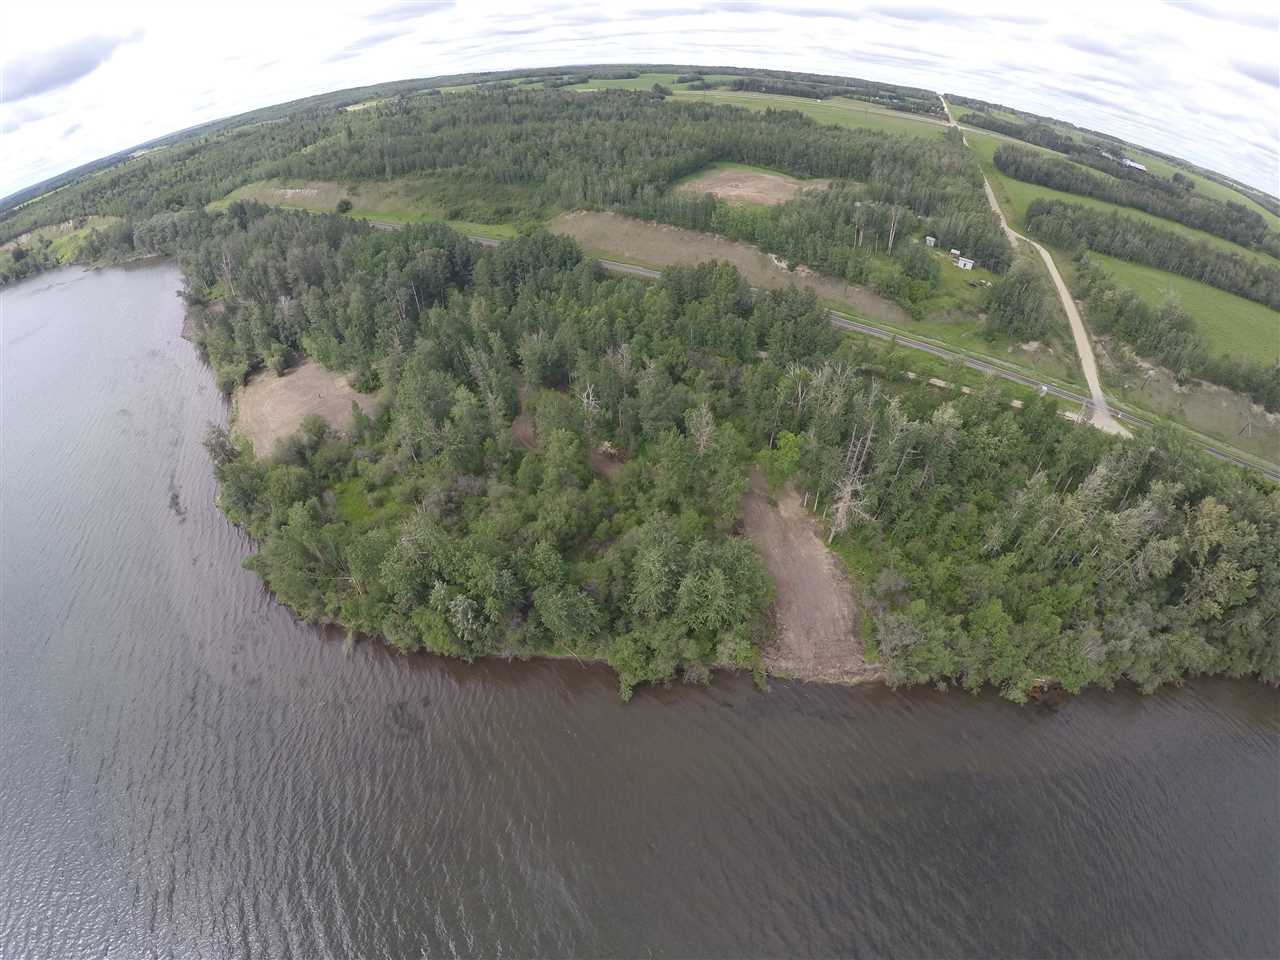 ONCE IN A LIFETIME OPPORTUNITY to own PRIVATE WATERFRONT land on Lake Wabamun close to Seba Beach! Consisting of 1.9 acres, this RARE find boasts over 900 ft. of sandy beach with Riparian Rights to the water.  South facing waterfront exposure with two building site areas. Plenty of trees for added privacy. Located a short 45-minute drive west of Edmonton, this property is the perfect site for your Lake Retreat! Adjacent 5.39 acres is also for sale, please visit MLS# E4066014